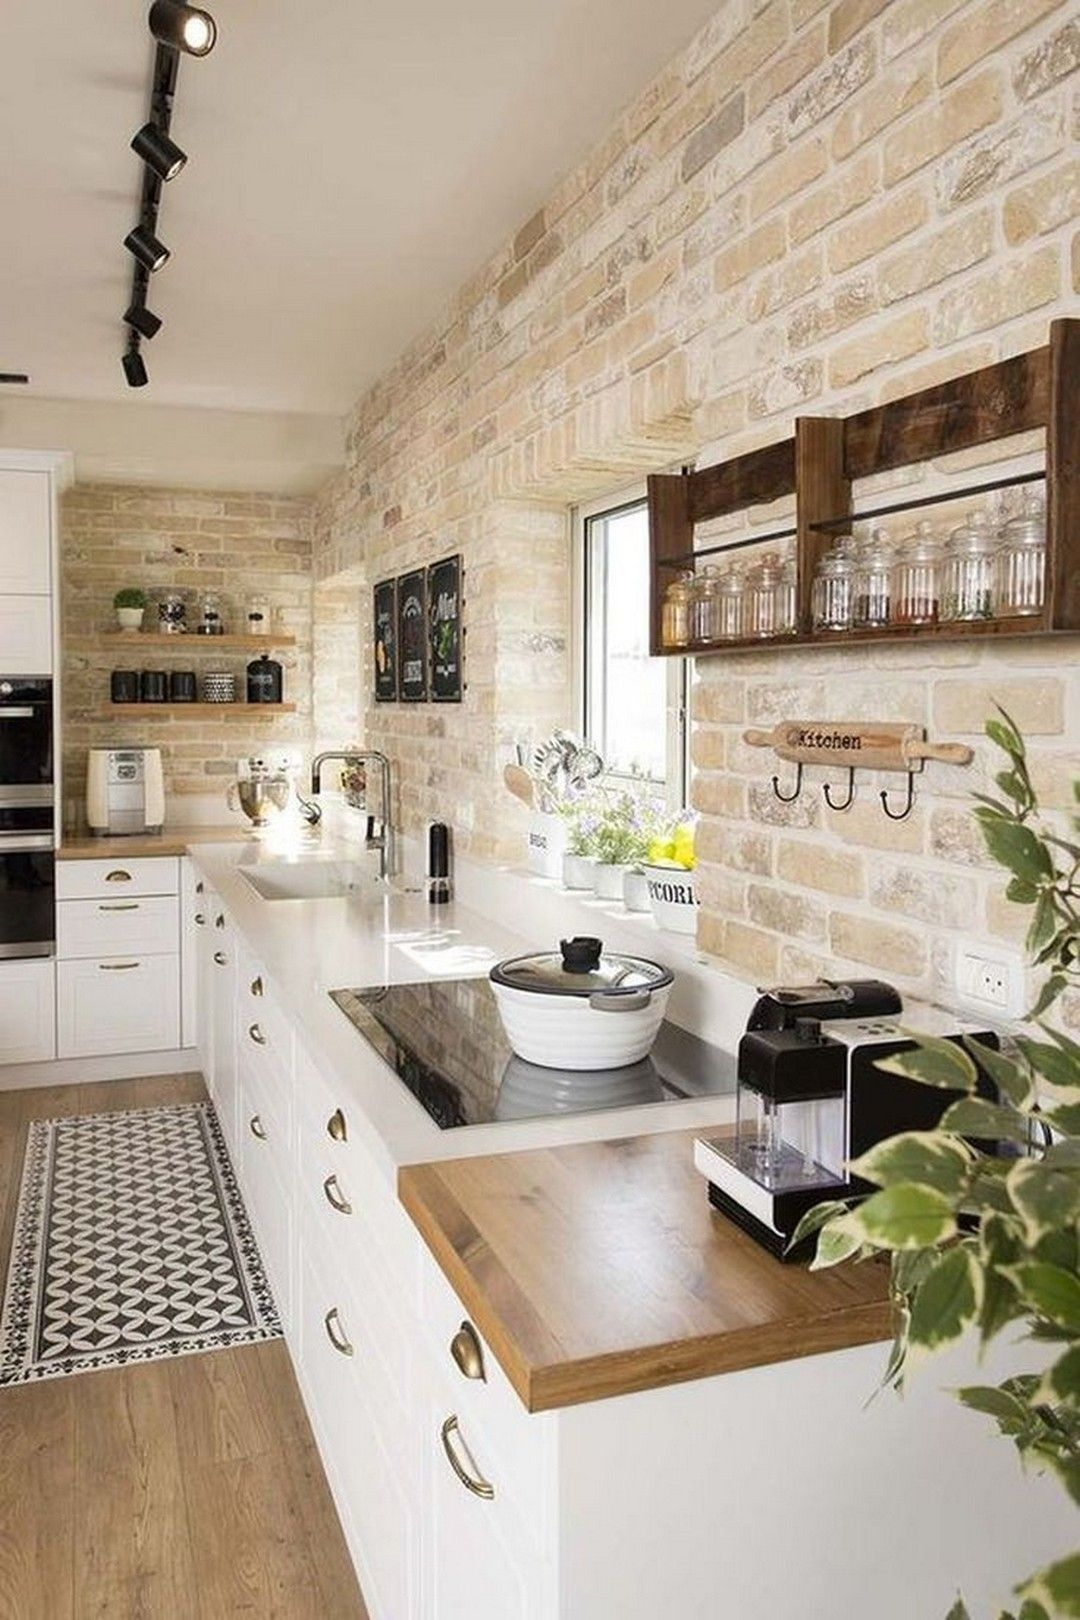 46 Unique Diy Kitchen Backsplash Ideas To Personalize Your Cooking